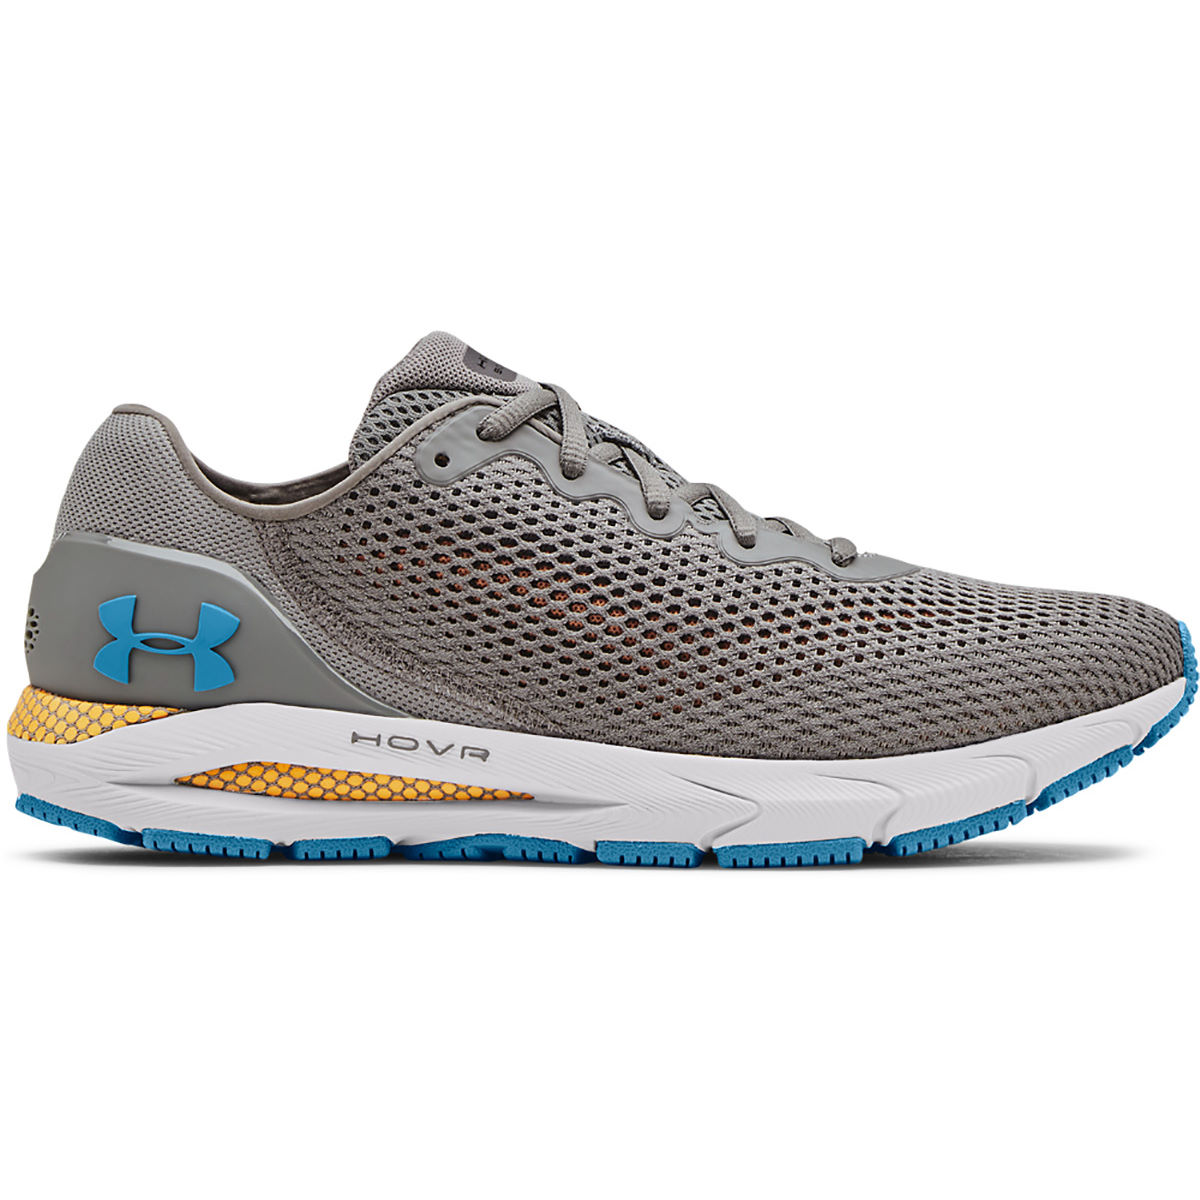 Under Armour HOVR Sonic 4 Running Shoes   Running Shoes